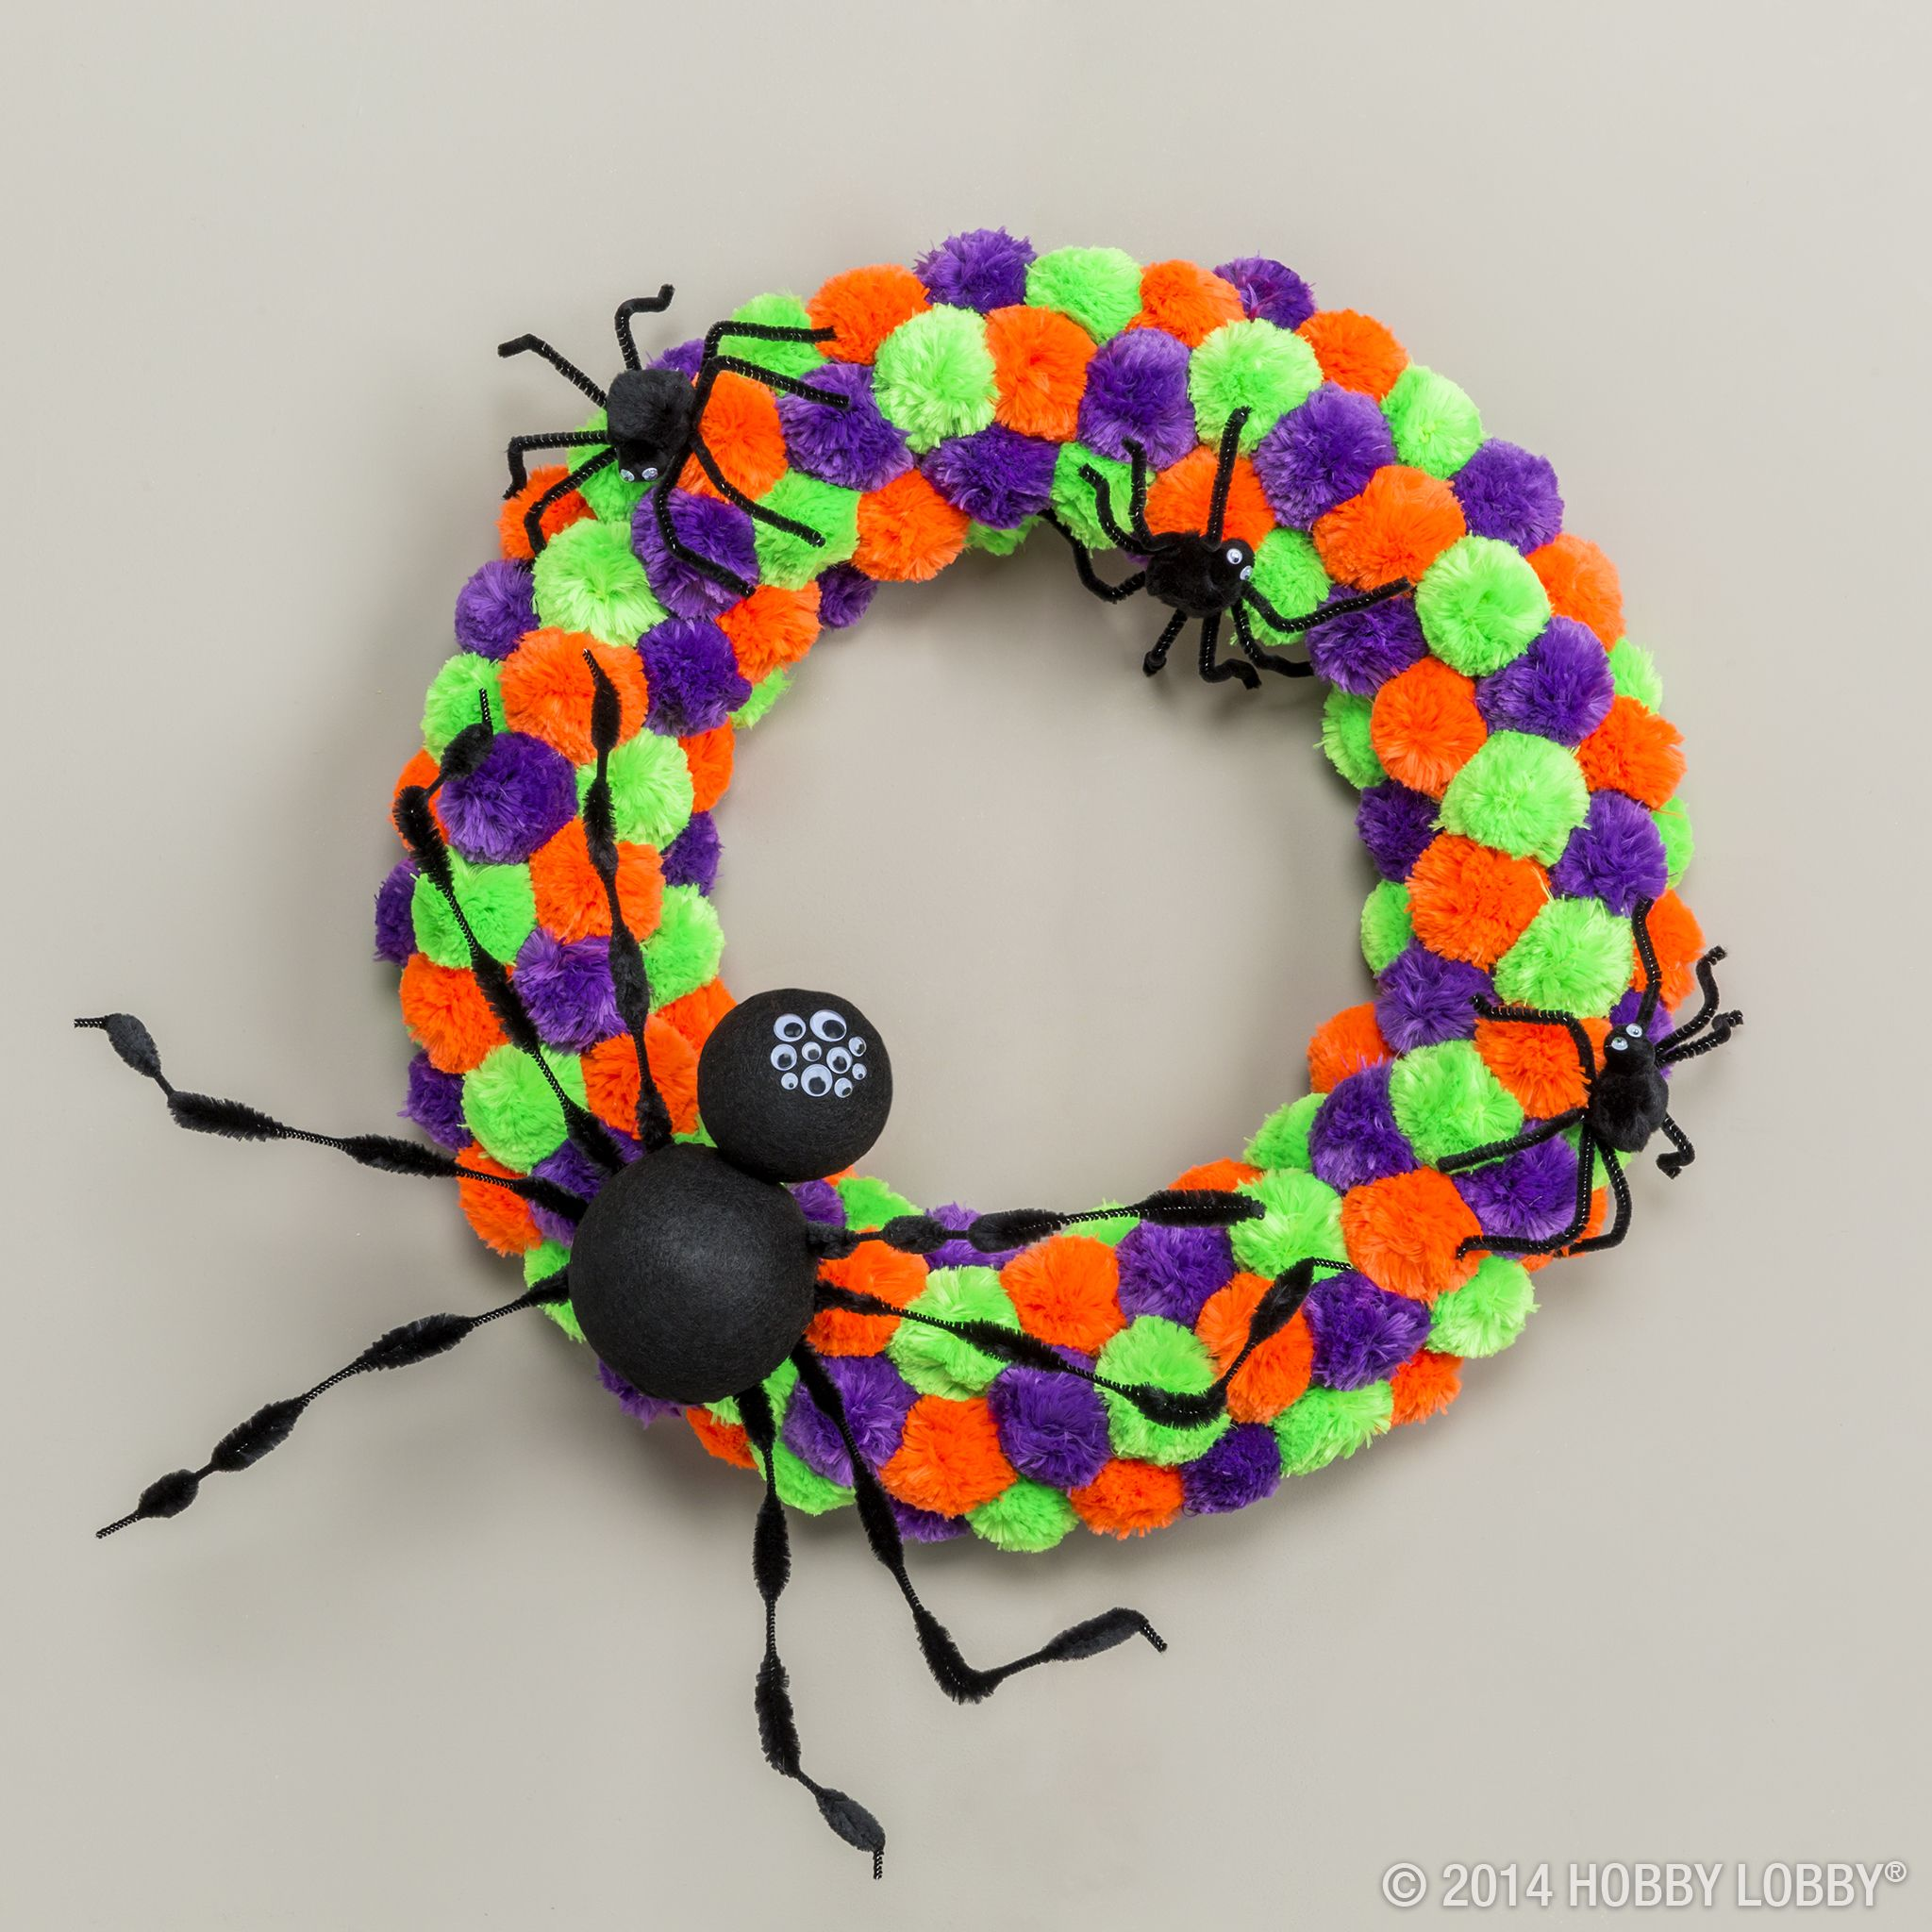 Say boo! This pom-pom Halloween wreath is easy-to-create and oh so - Hobby Lobby Halloween Decorations